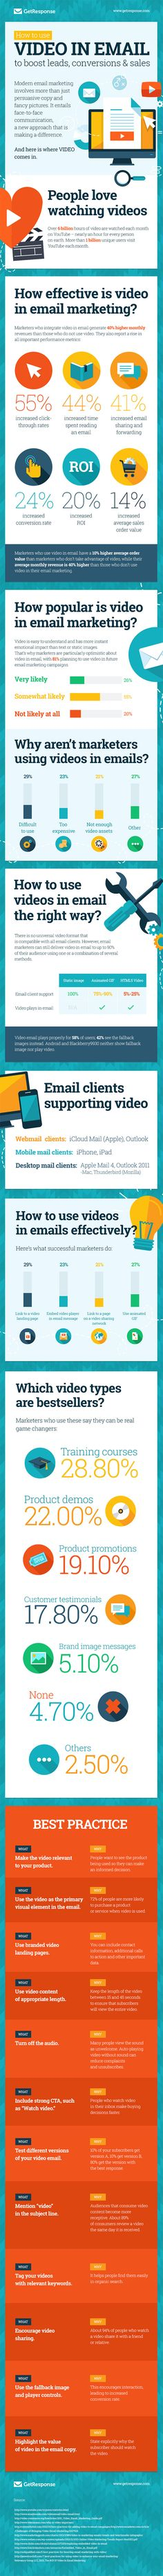 Email Marketing How to Use Video to Boost Conversions and Sales #Infographic